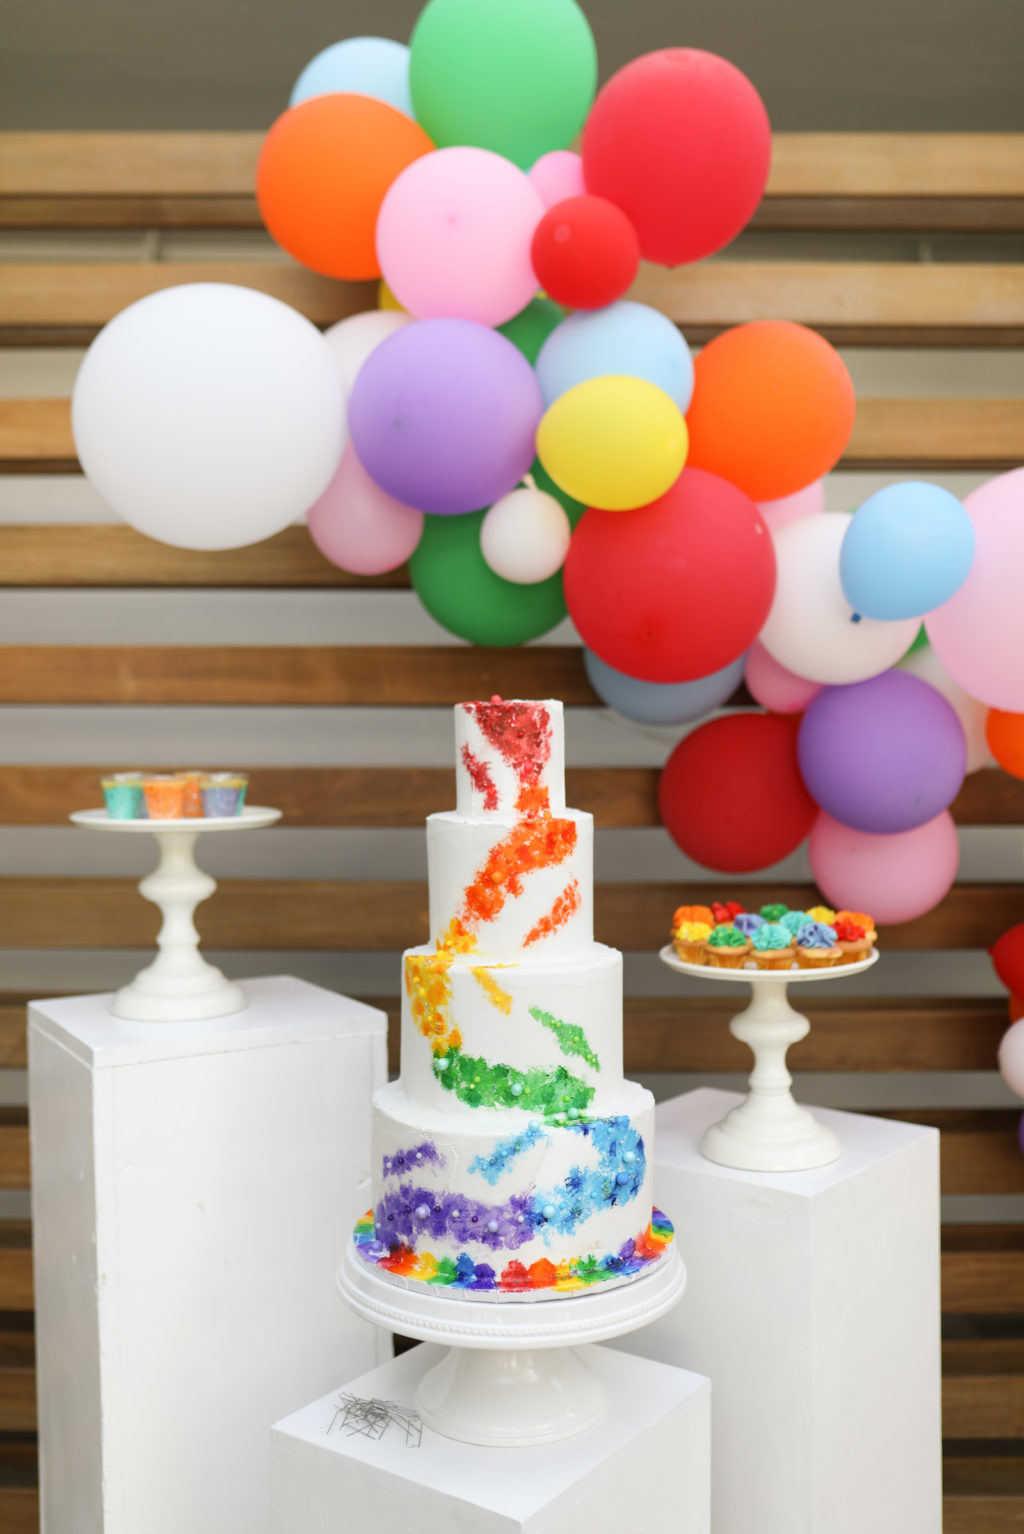 Unique Modern Gay LGBTQ+ Pride Wedding, Four Tier White with Rainbow, Purple, Blue, Green, Yellow, Orange and Red Painted Colors, Colorful Balloon Arch   Tampa Bay Wedding Planner Stephany Perry Events